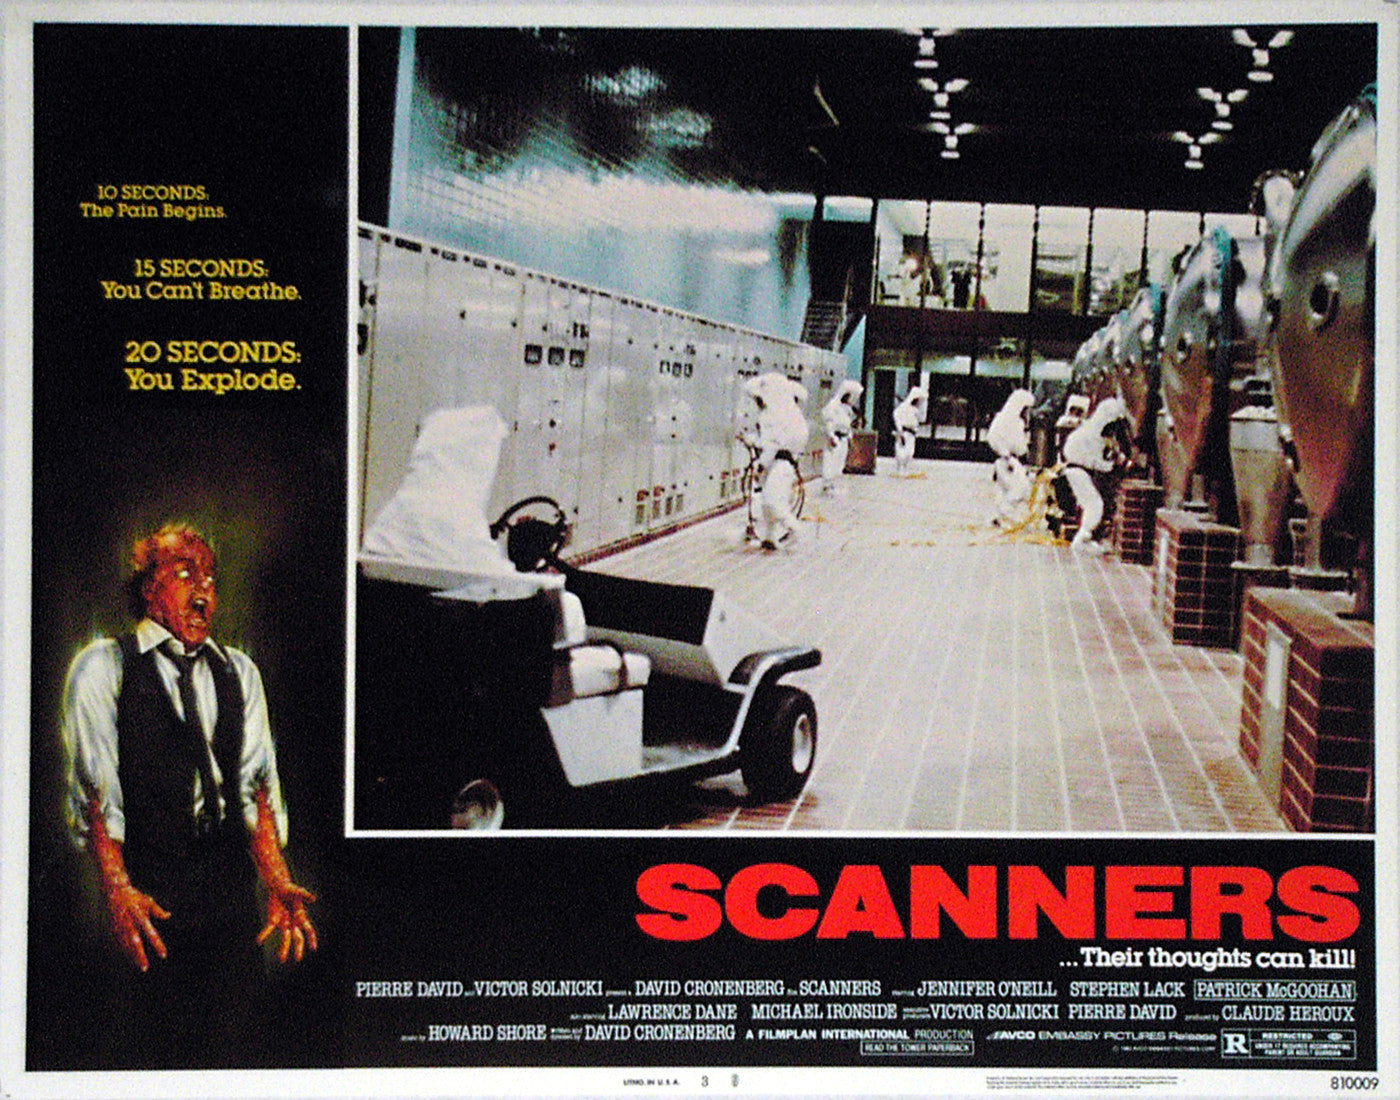 SCANNERS - US lobby card v3